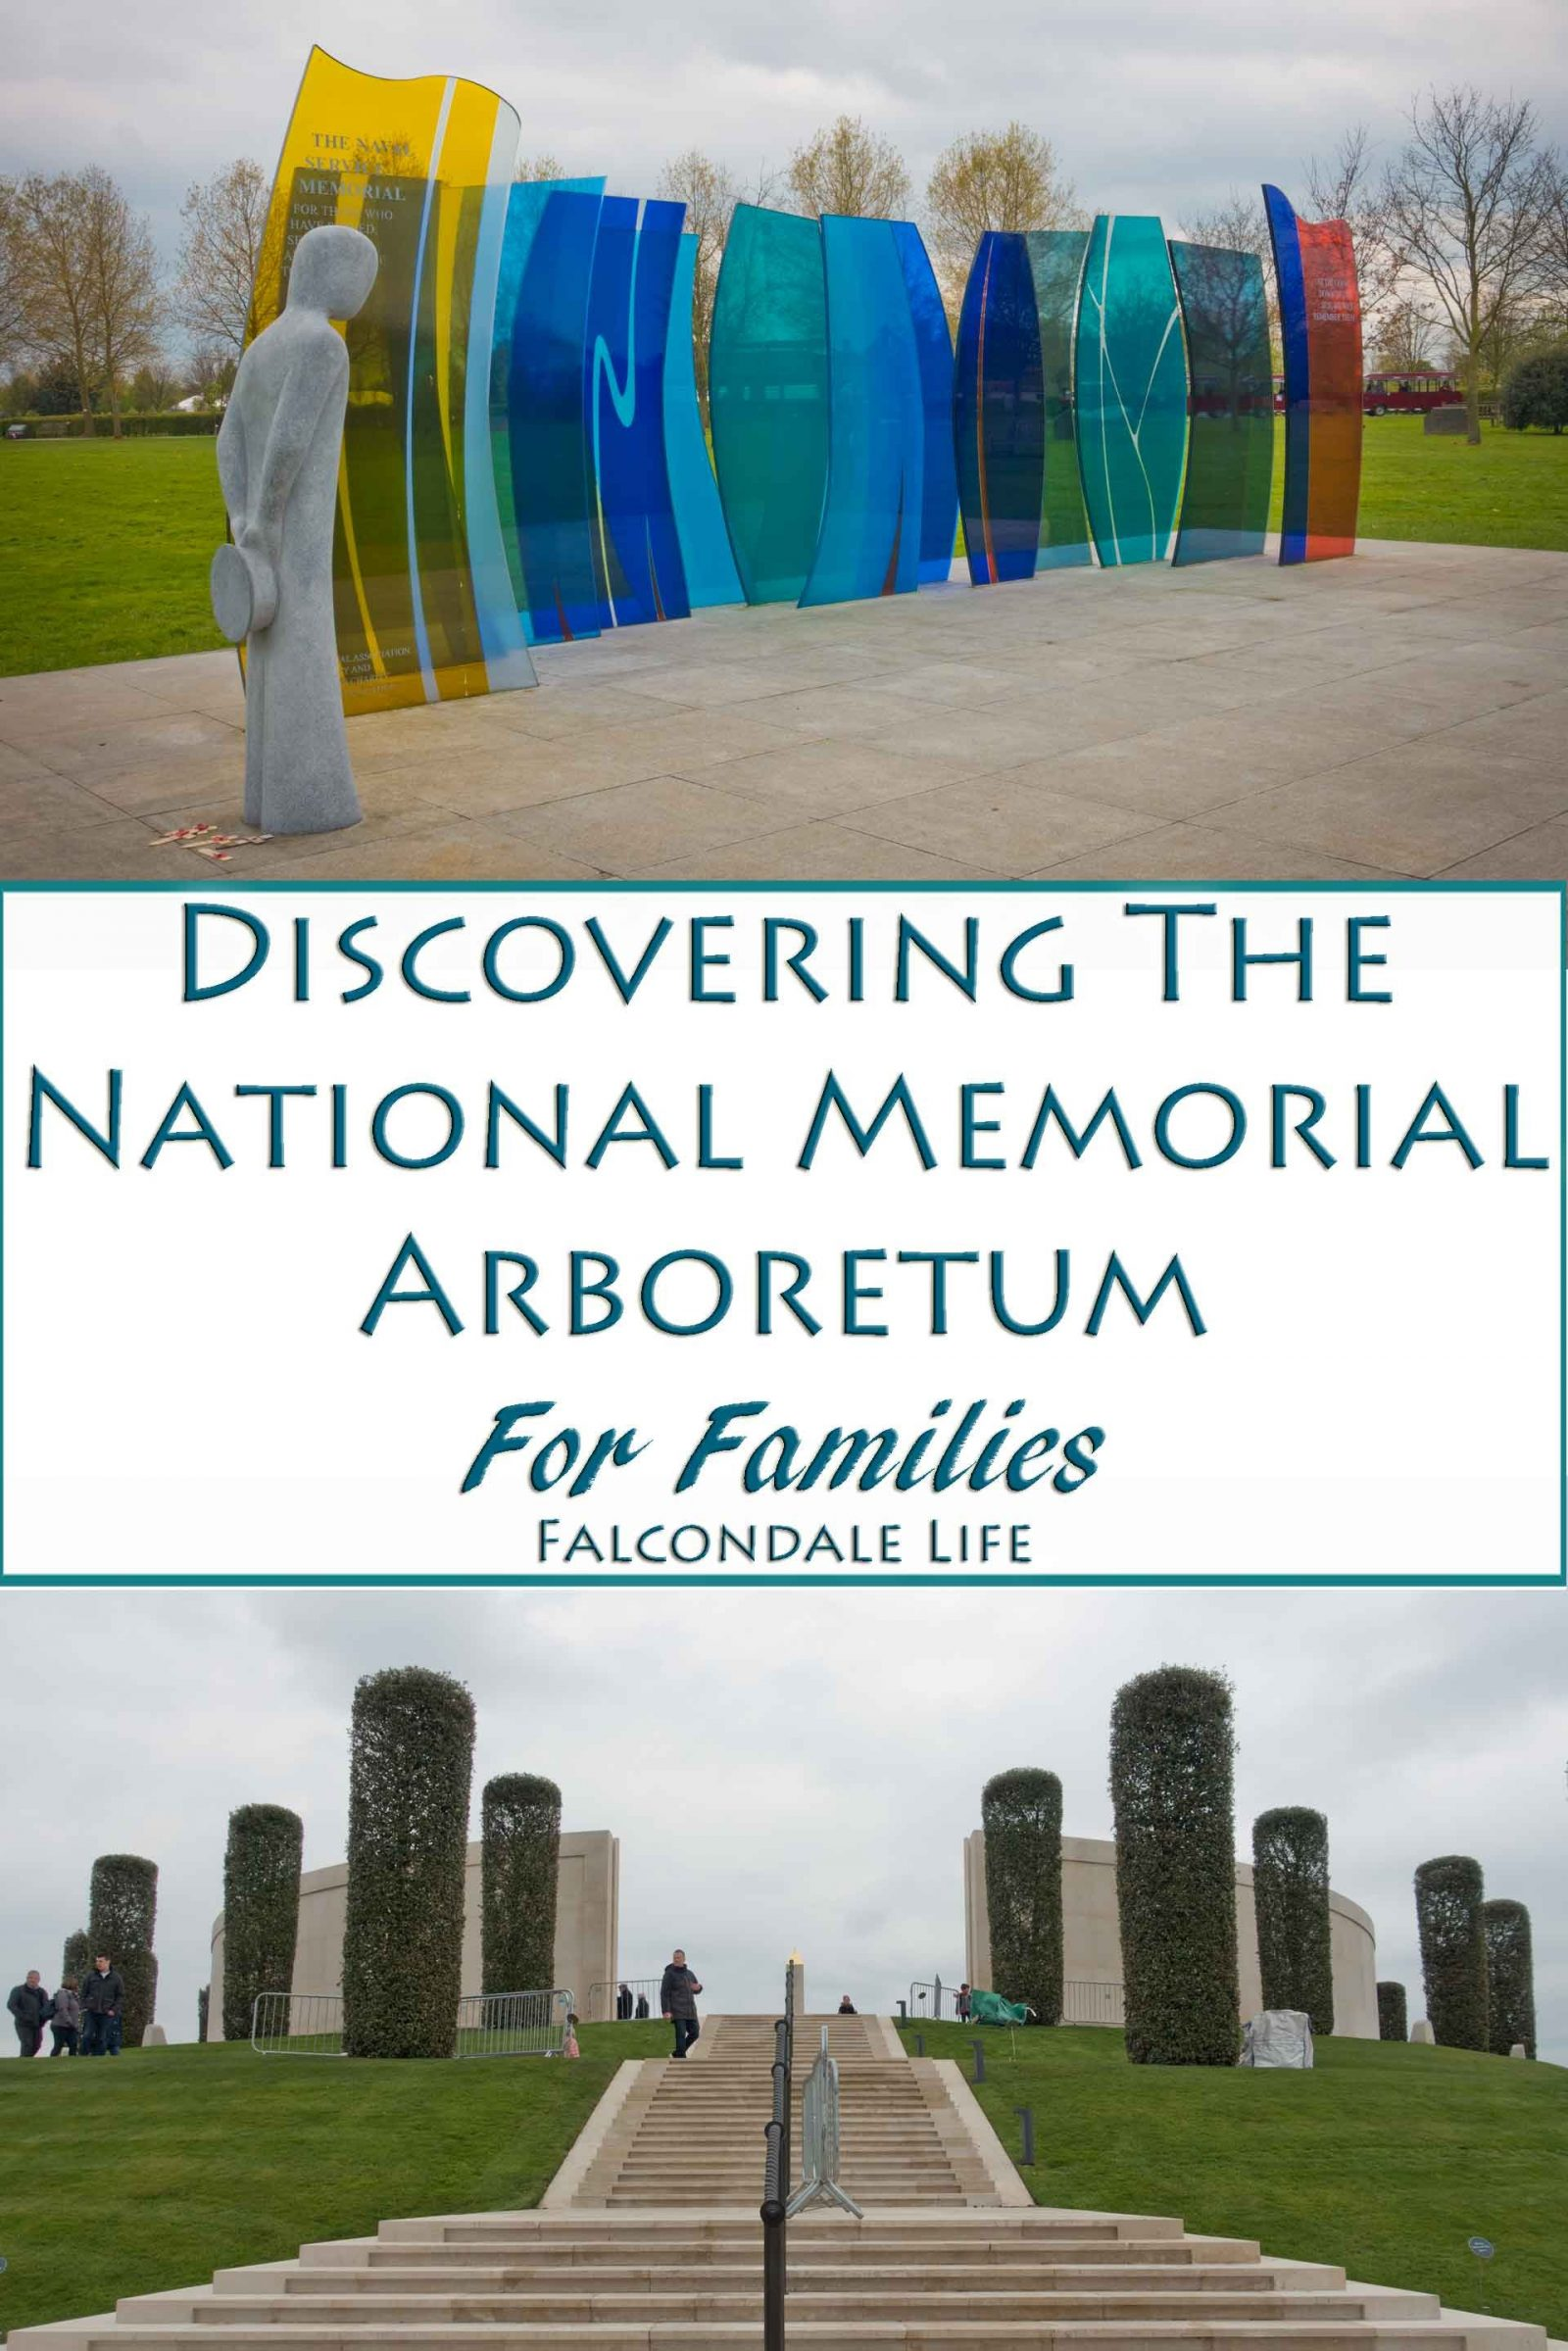 Discovering the National Memorial Arboretum For Families